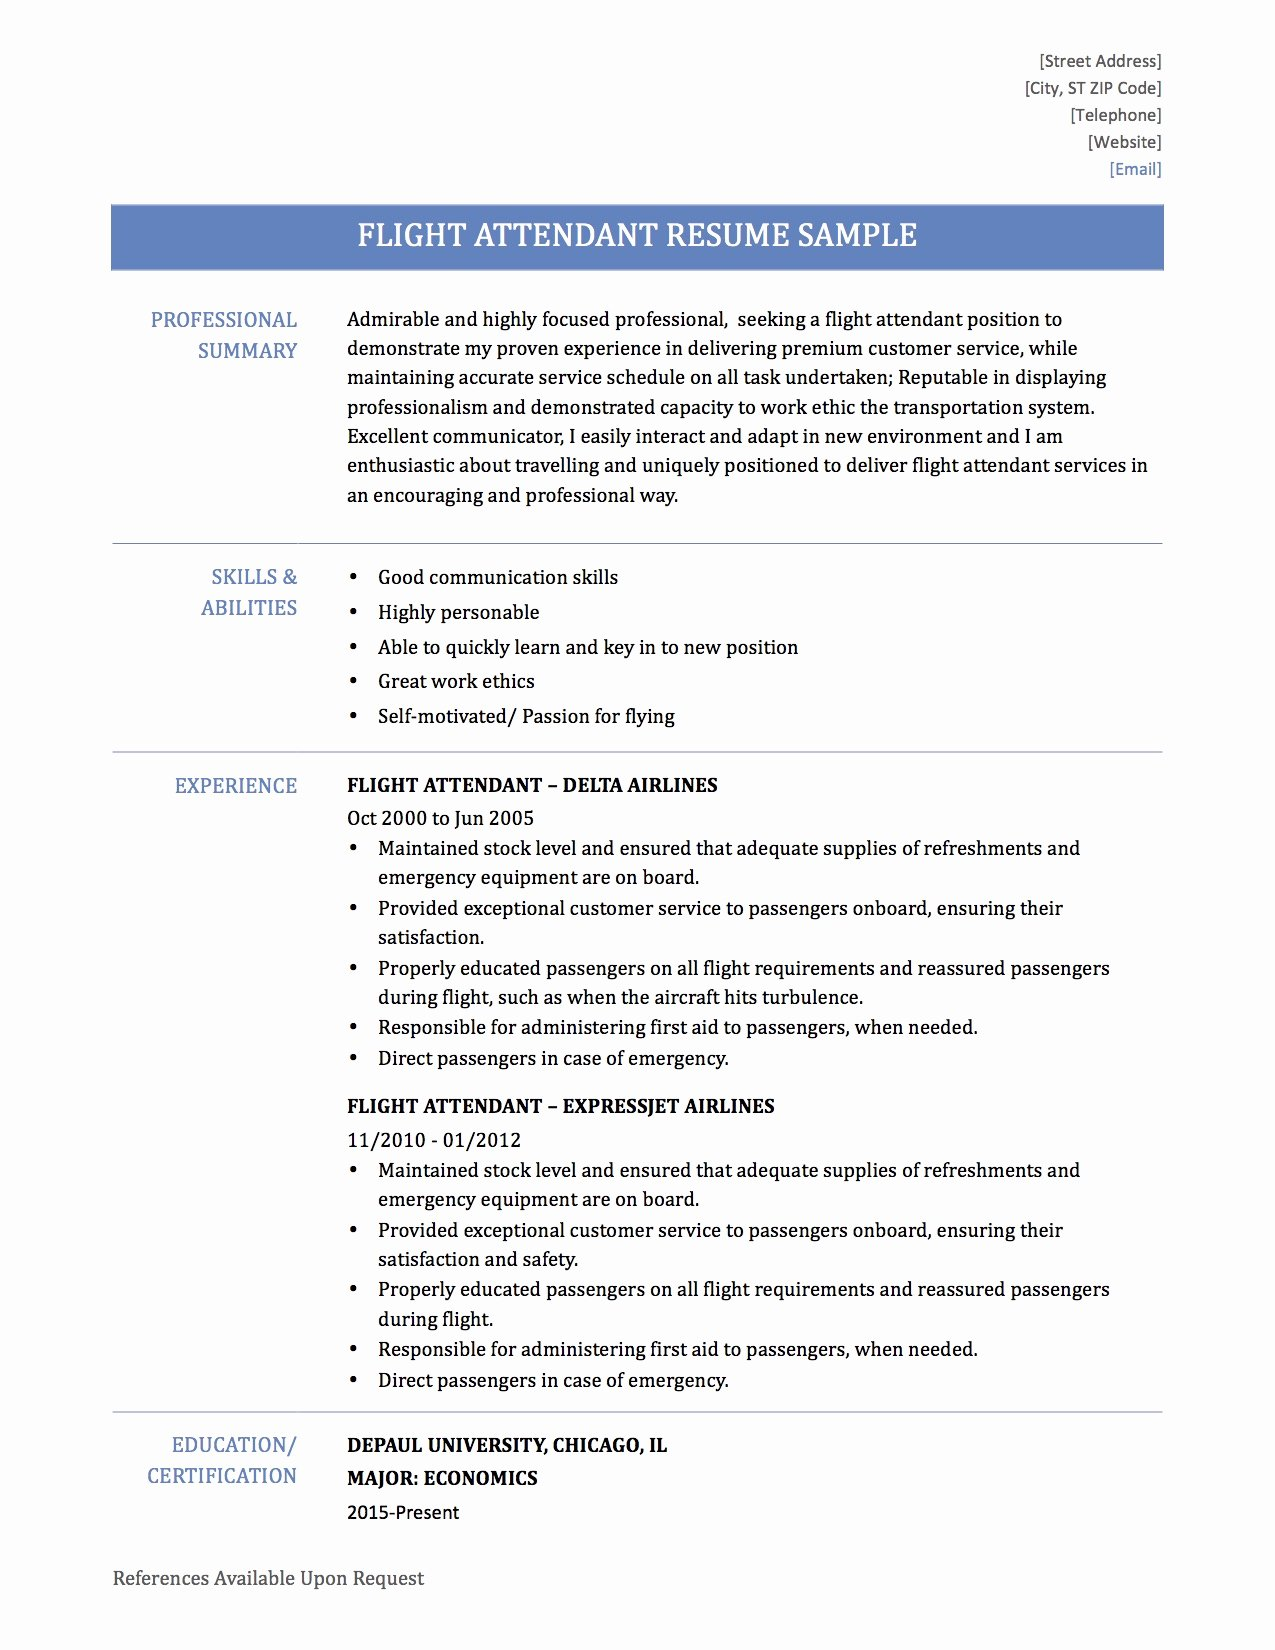 Flight attendant Resume Template Awesome Resume Flight attendant Resume Ideas